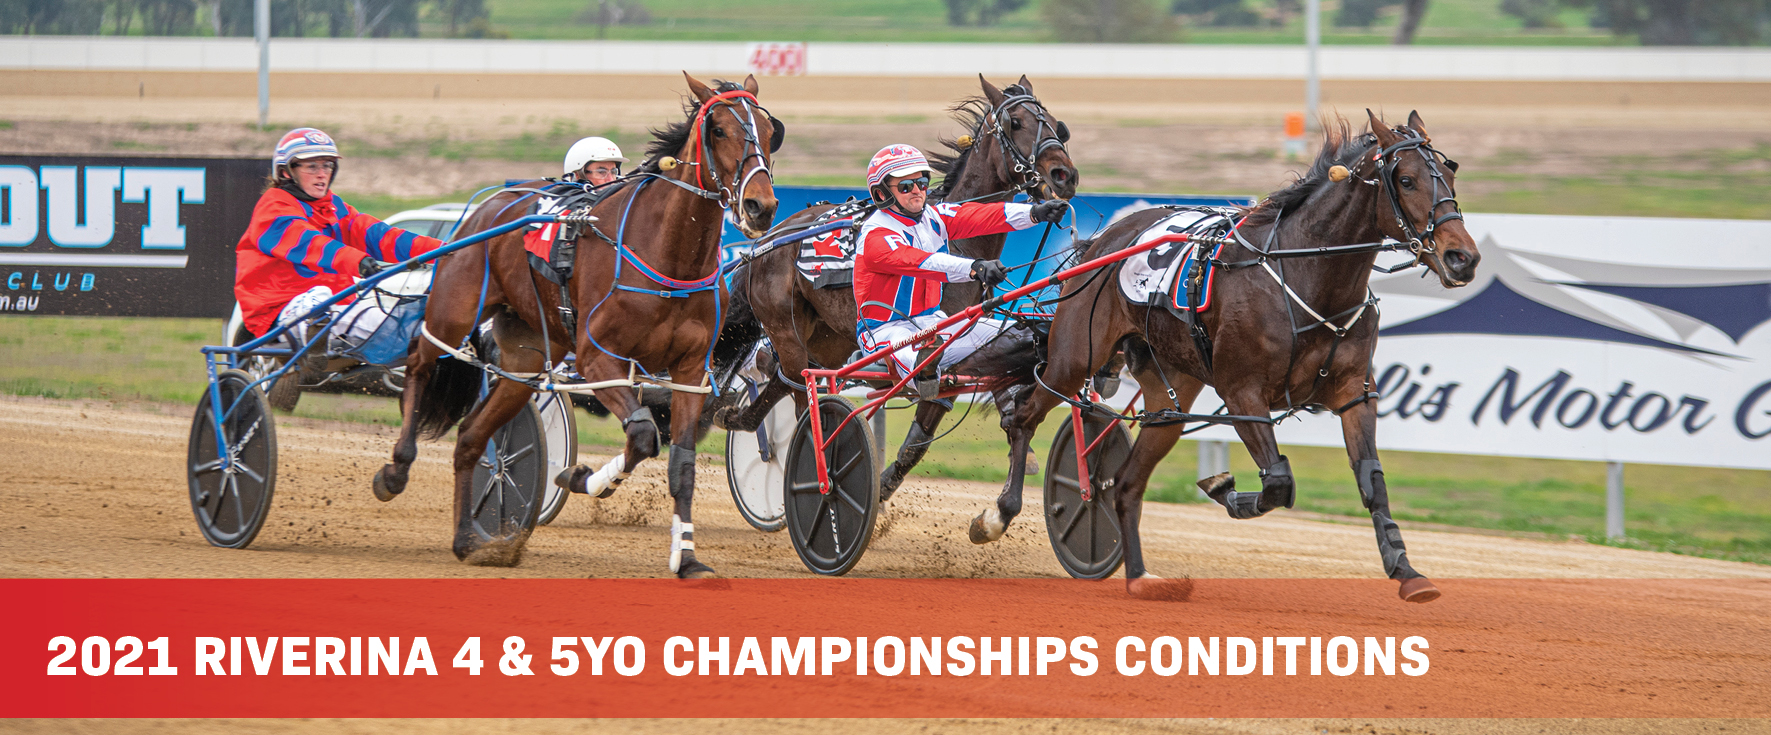 RIVERINA CHAMPIONSHIPS CONDITIONS